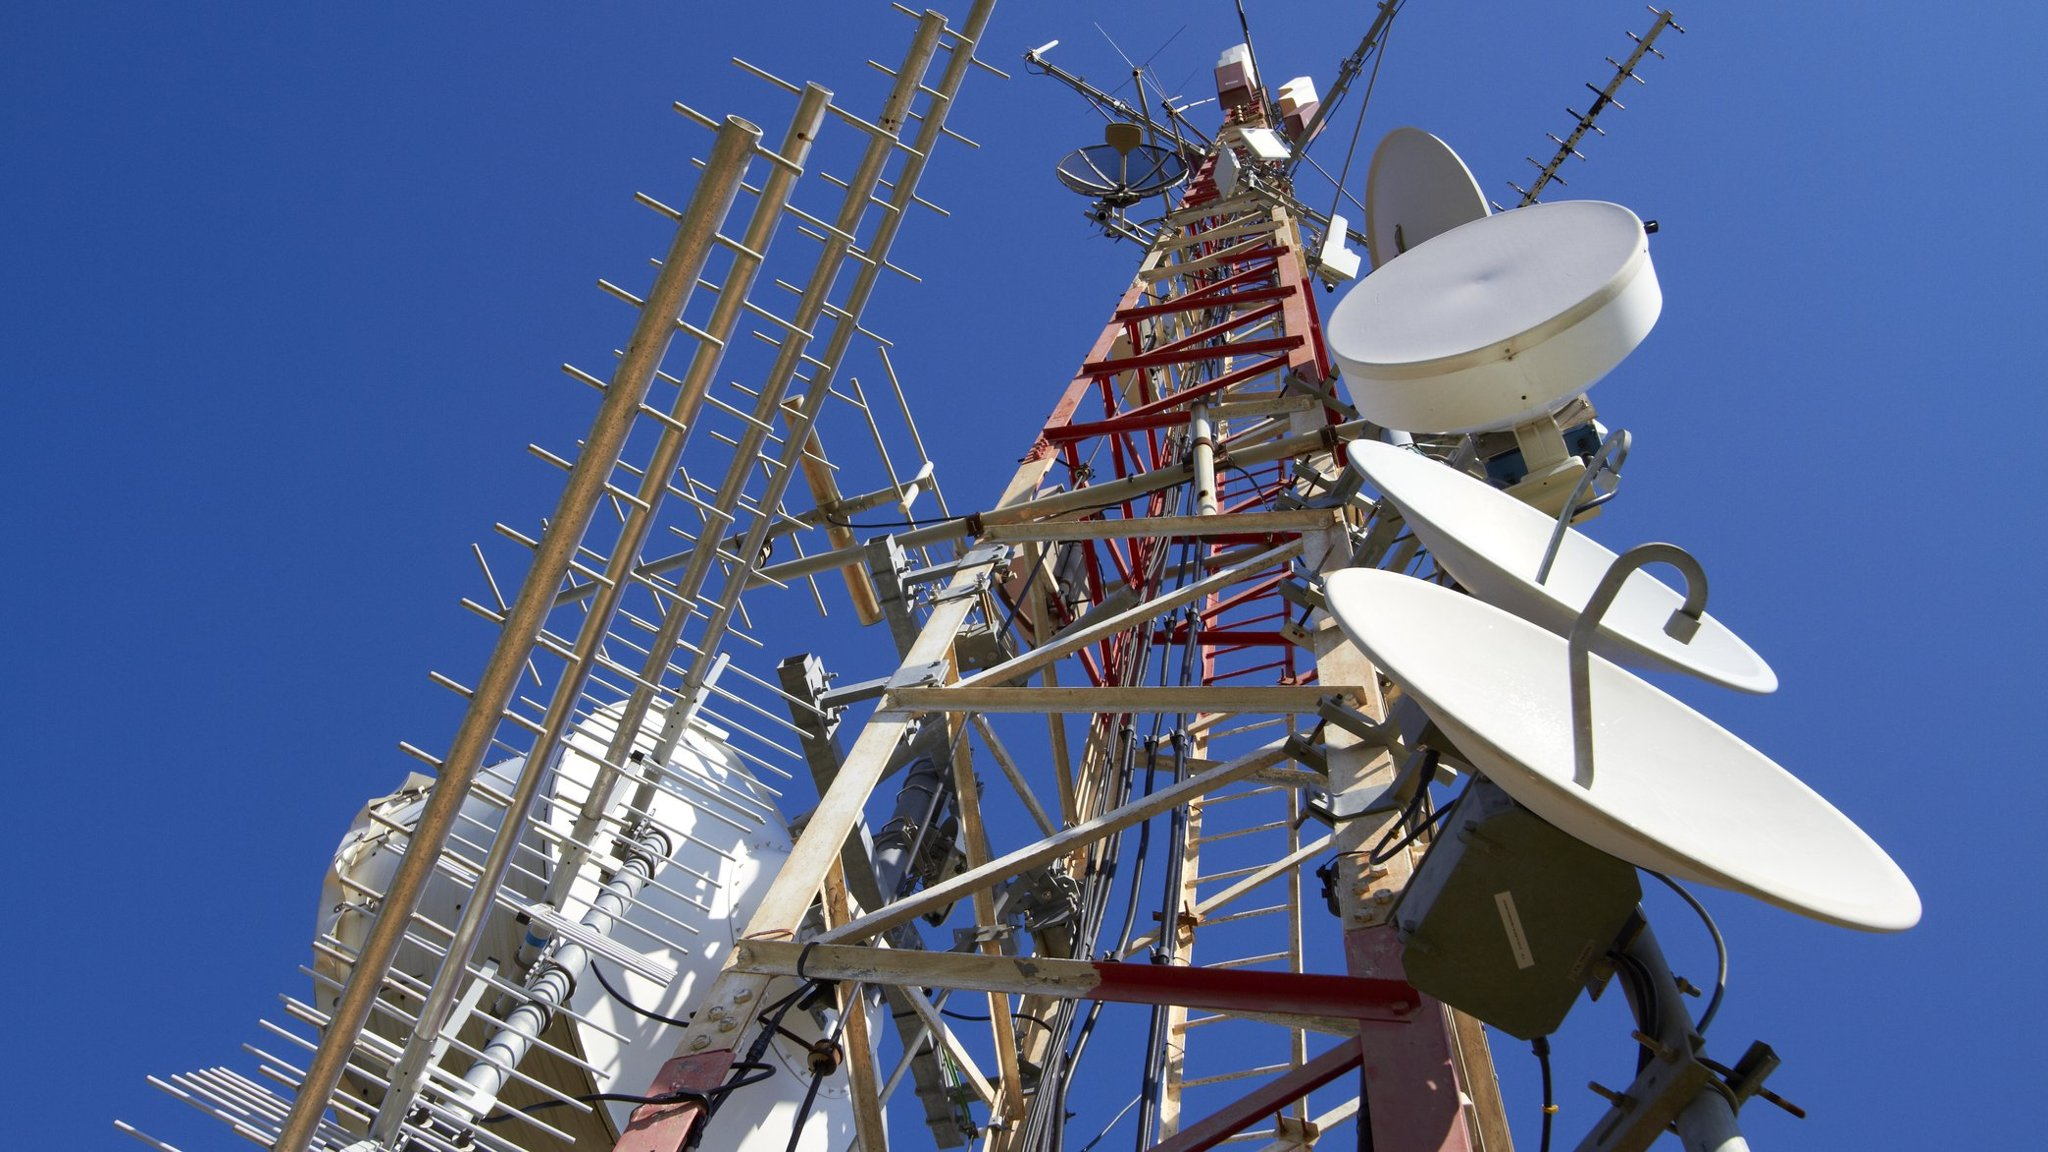 European telecoms towers find their range | Financial Times